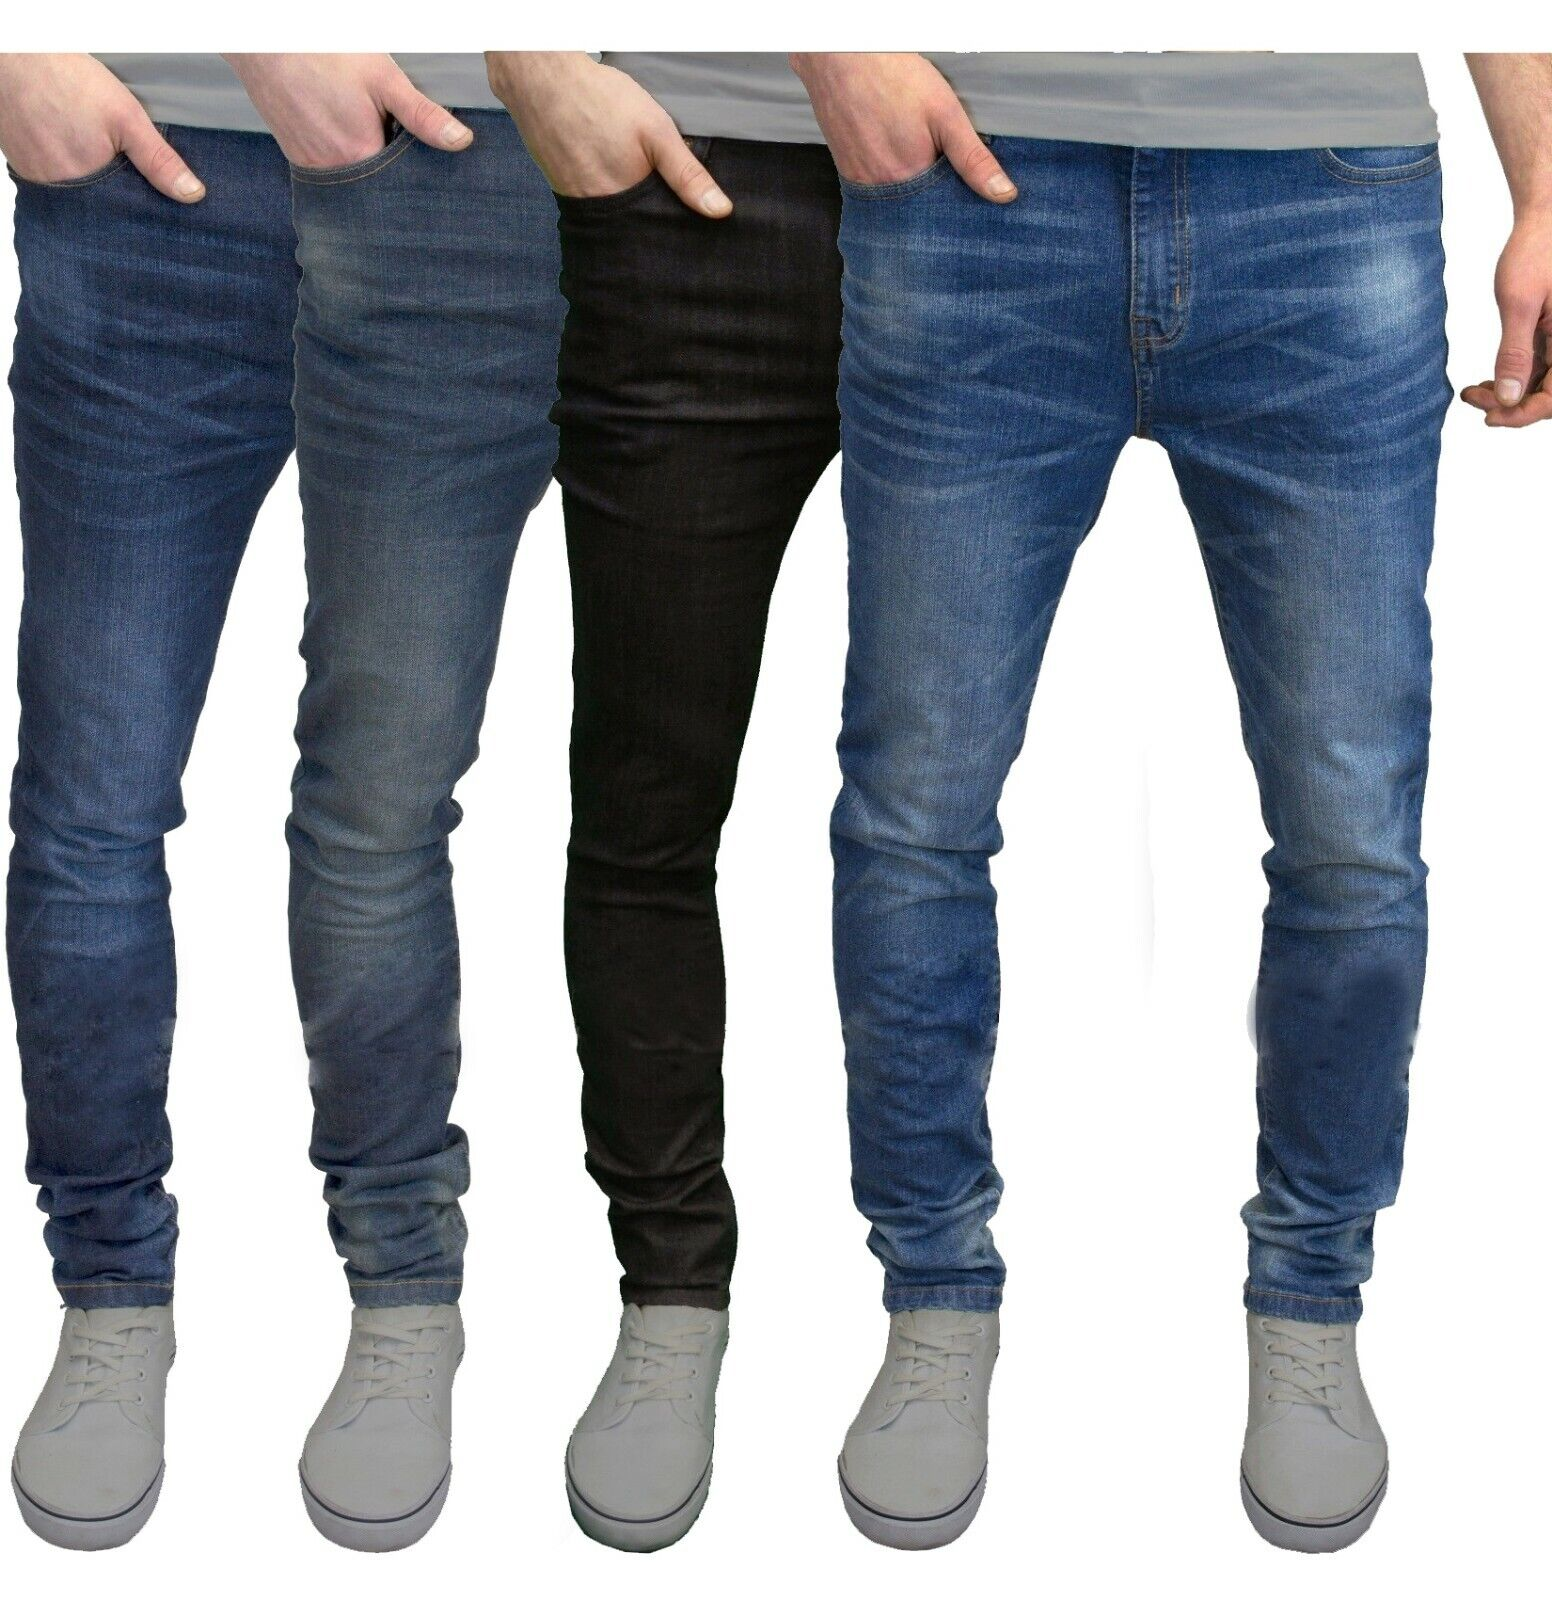 Mens Slim Fit Jeans Super Stretch Denim Pants Slim Skinny Casual Designer Jeans Clothing, Shoes & Accessories